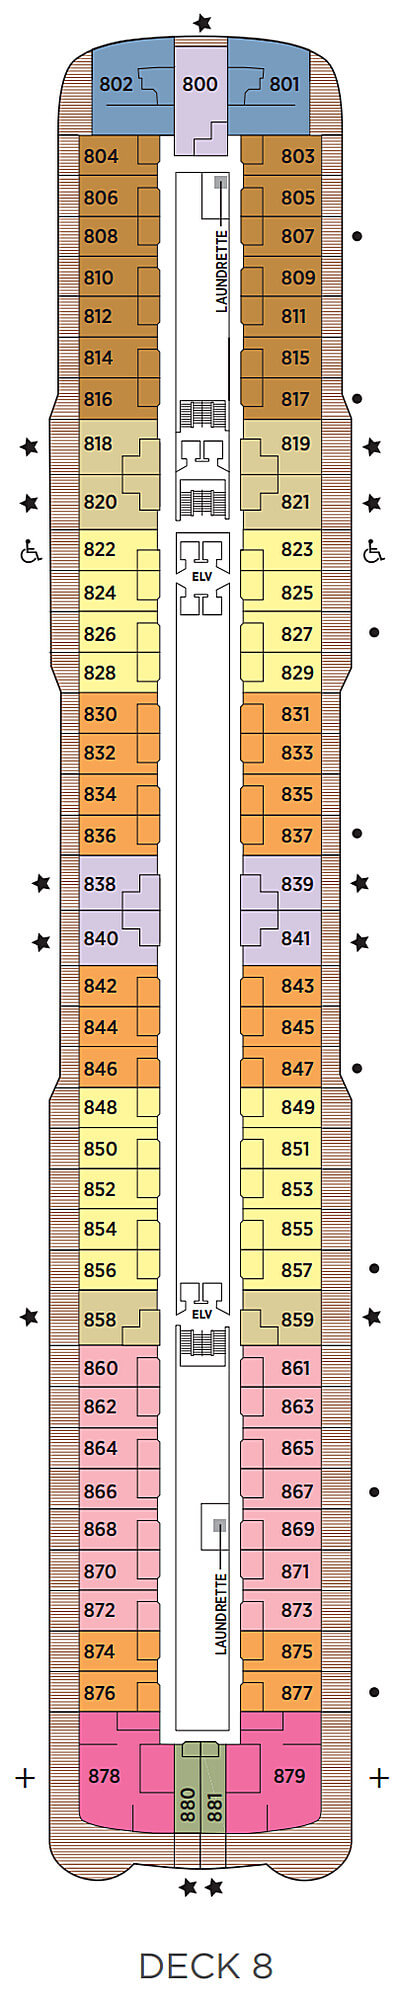 Seven Seas Explorer Deck 8 layout